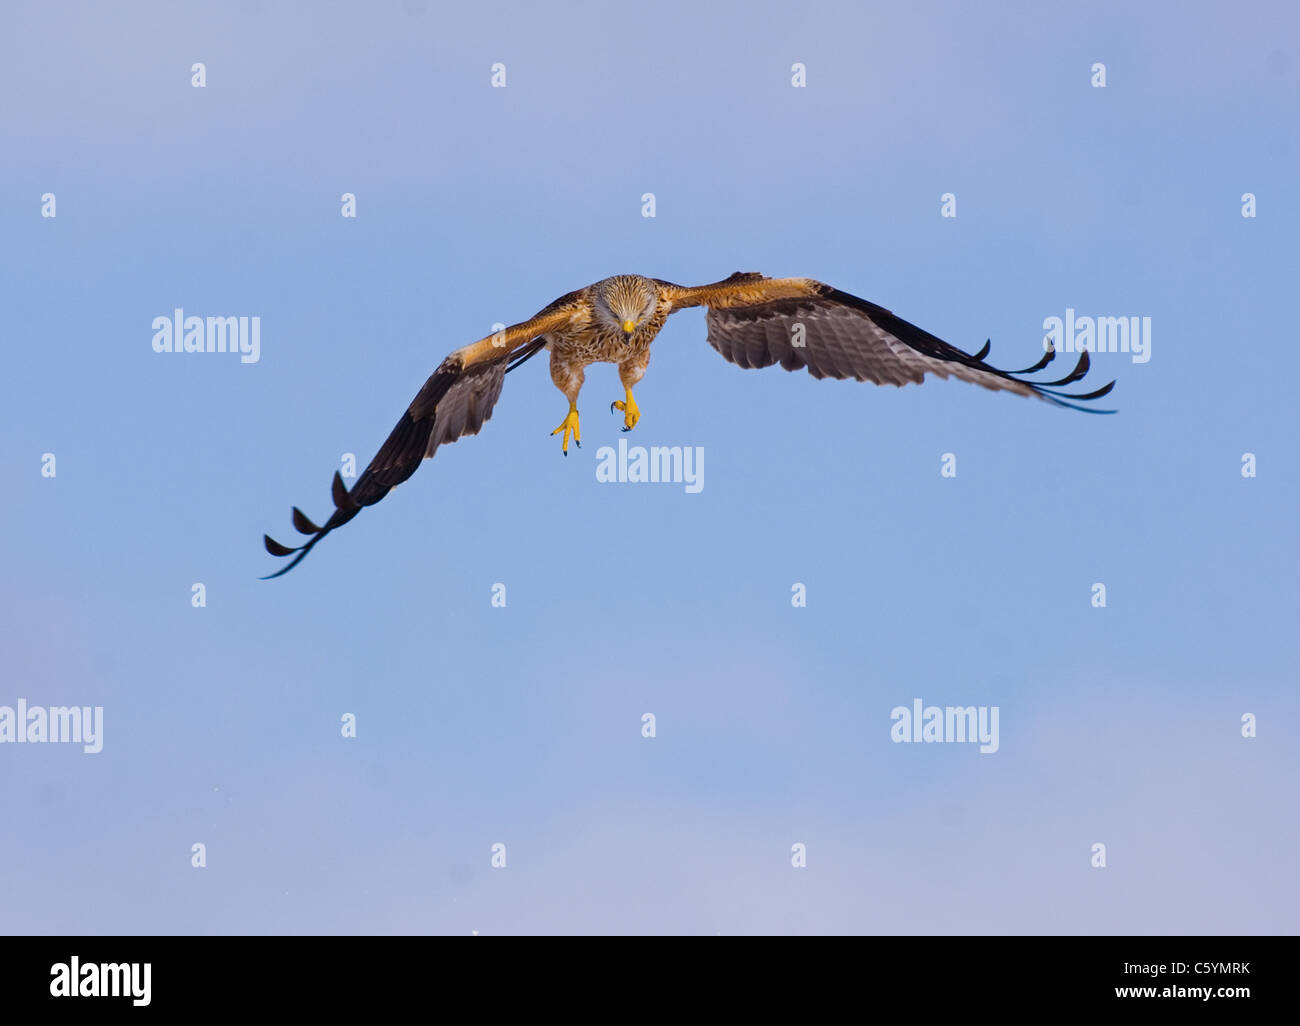 RED KITE Milvus milvus An adult in flight, lit by reflected snow, showing its talons. Mid Wales, UK - Stock Image